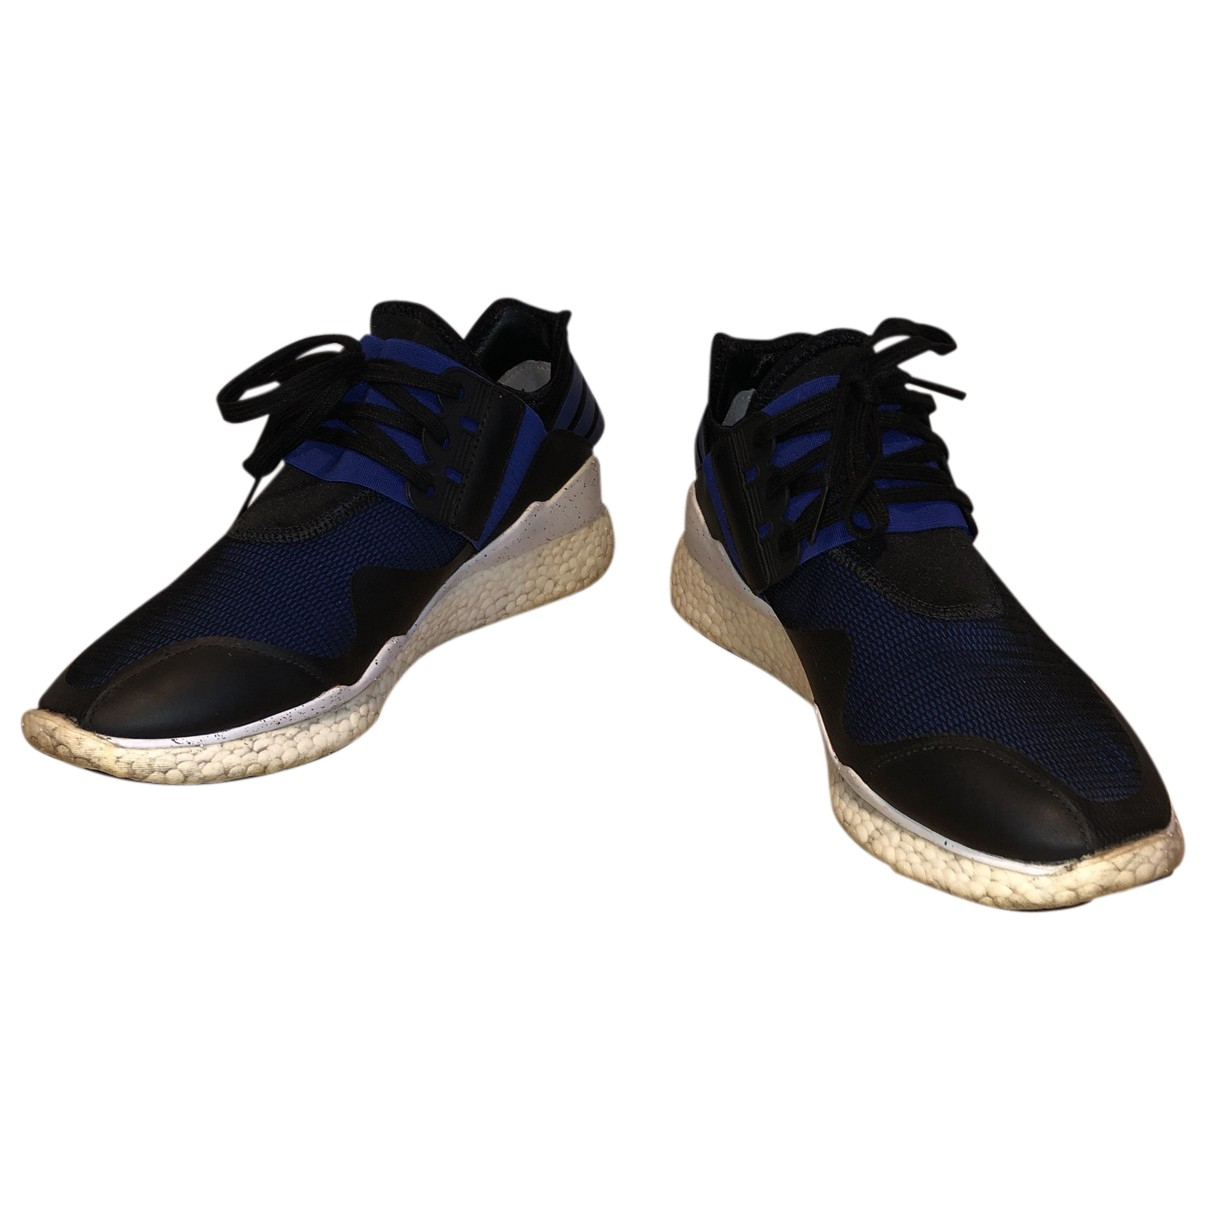 Y-3 By Yohji Yamamoto N Blue Trainers for Men 9.5 US